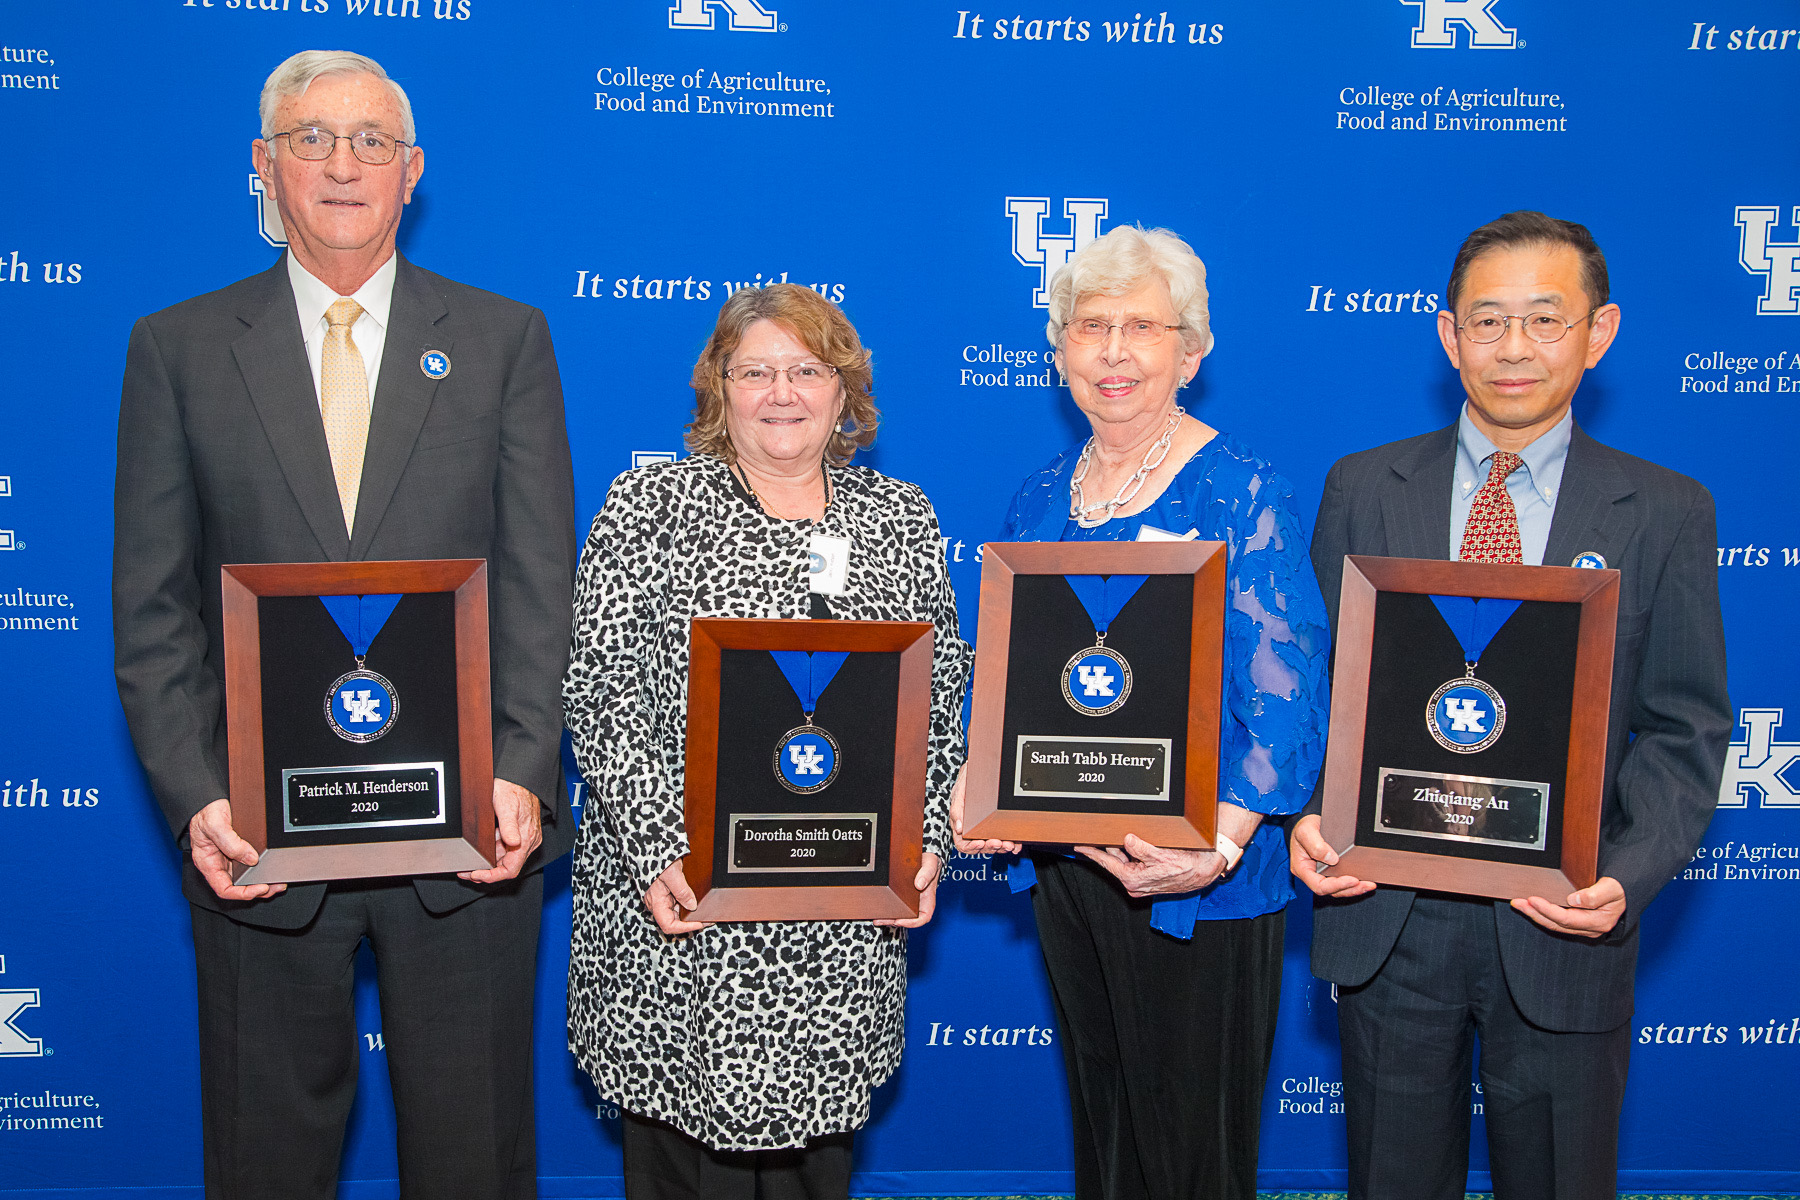 College of Agriculture, Food and Environment inducts latest class of distinguished alumni